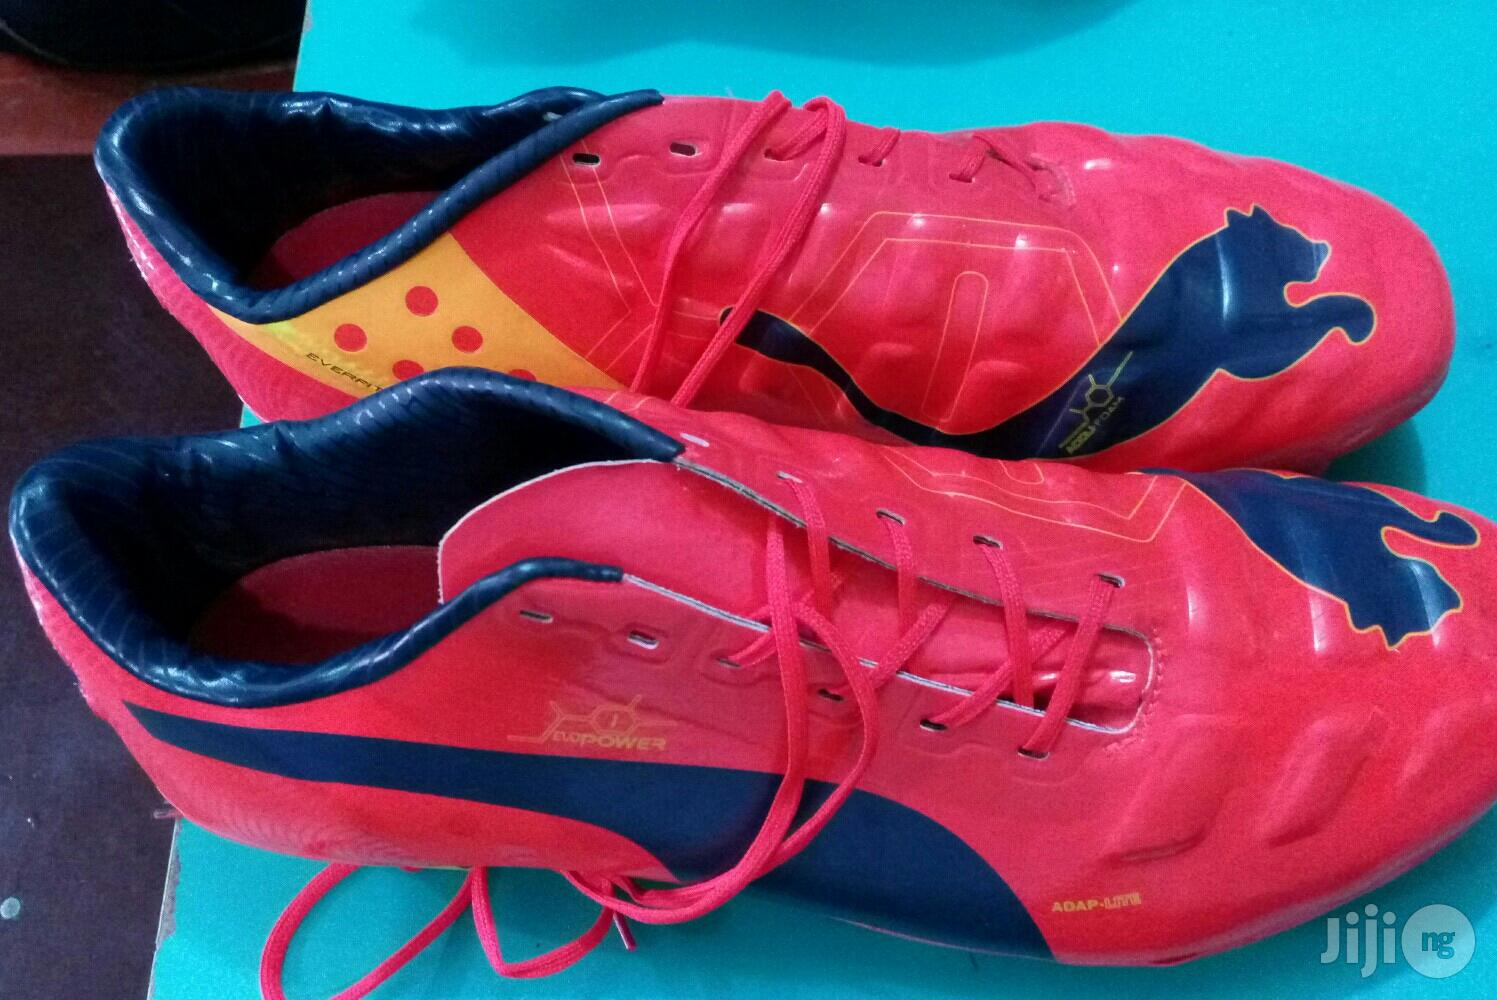 Size 40 Nd 41 Puma Boot | Shoes for sale in Ikeja, Lagos State, Nigeria